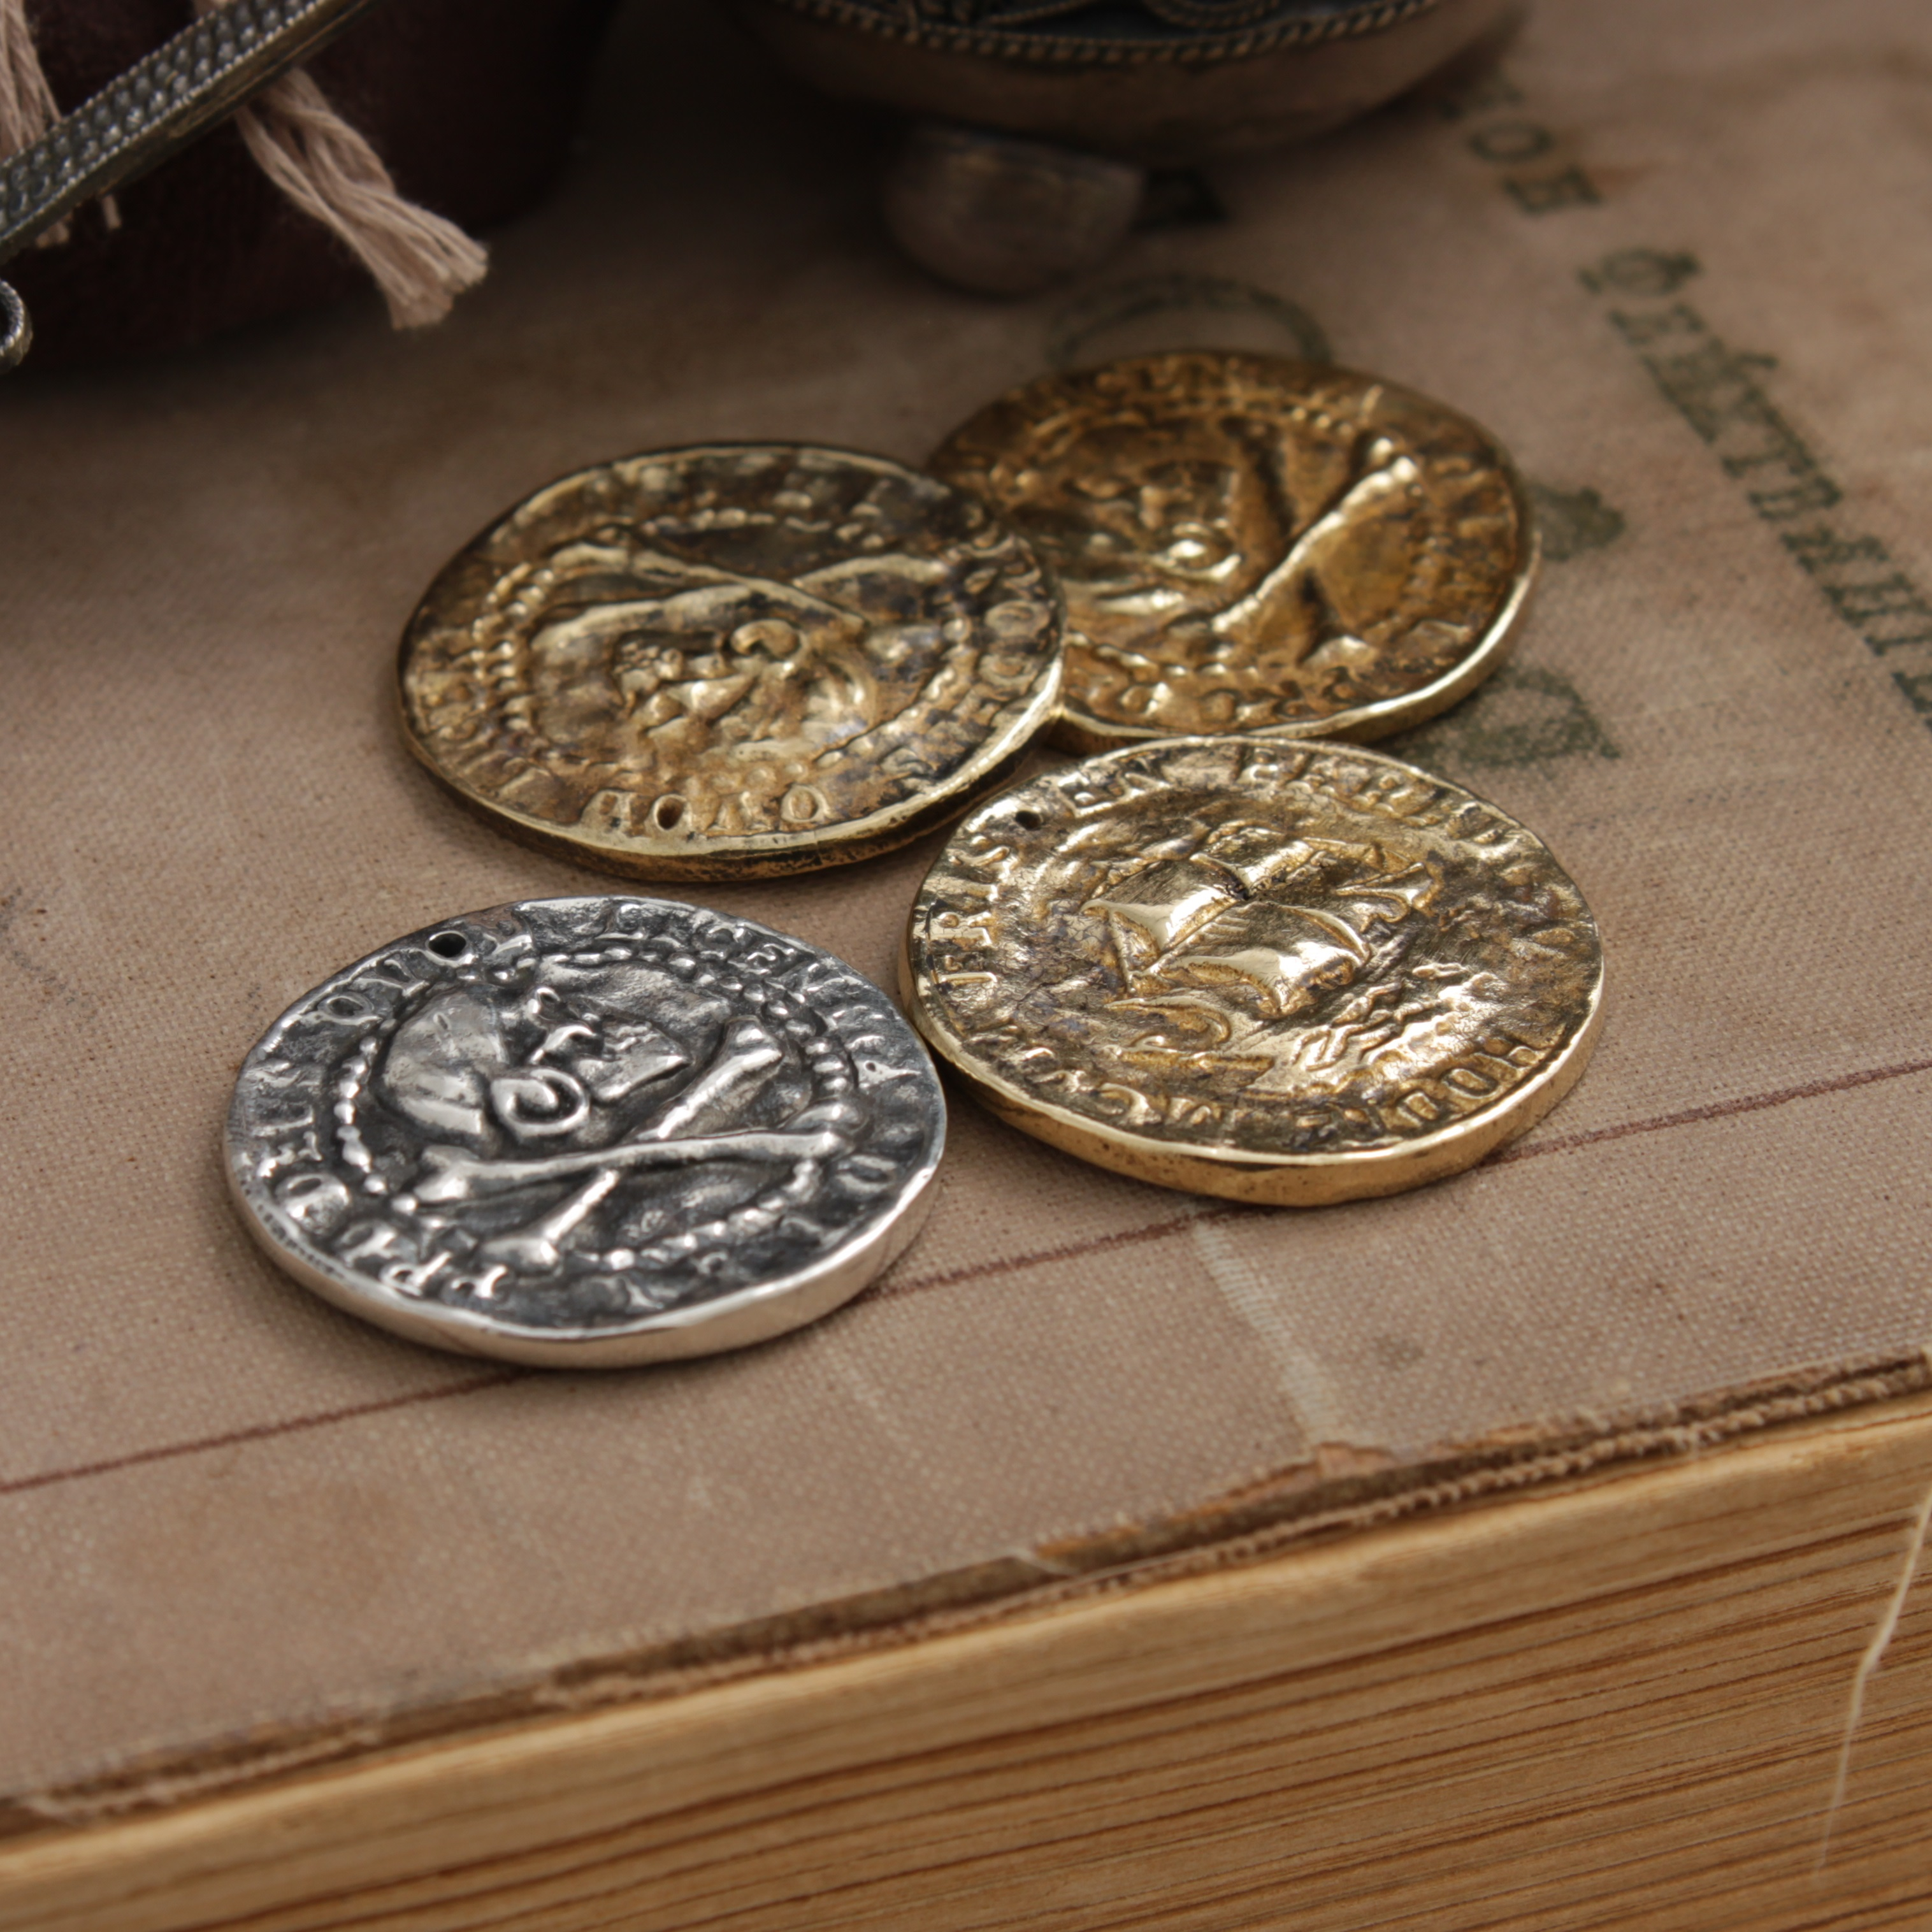 Collectibles Pirate Coin Sigil Gold Jolly Roger Pirate Sailboat